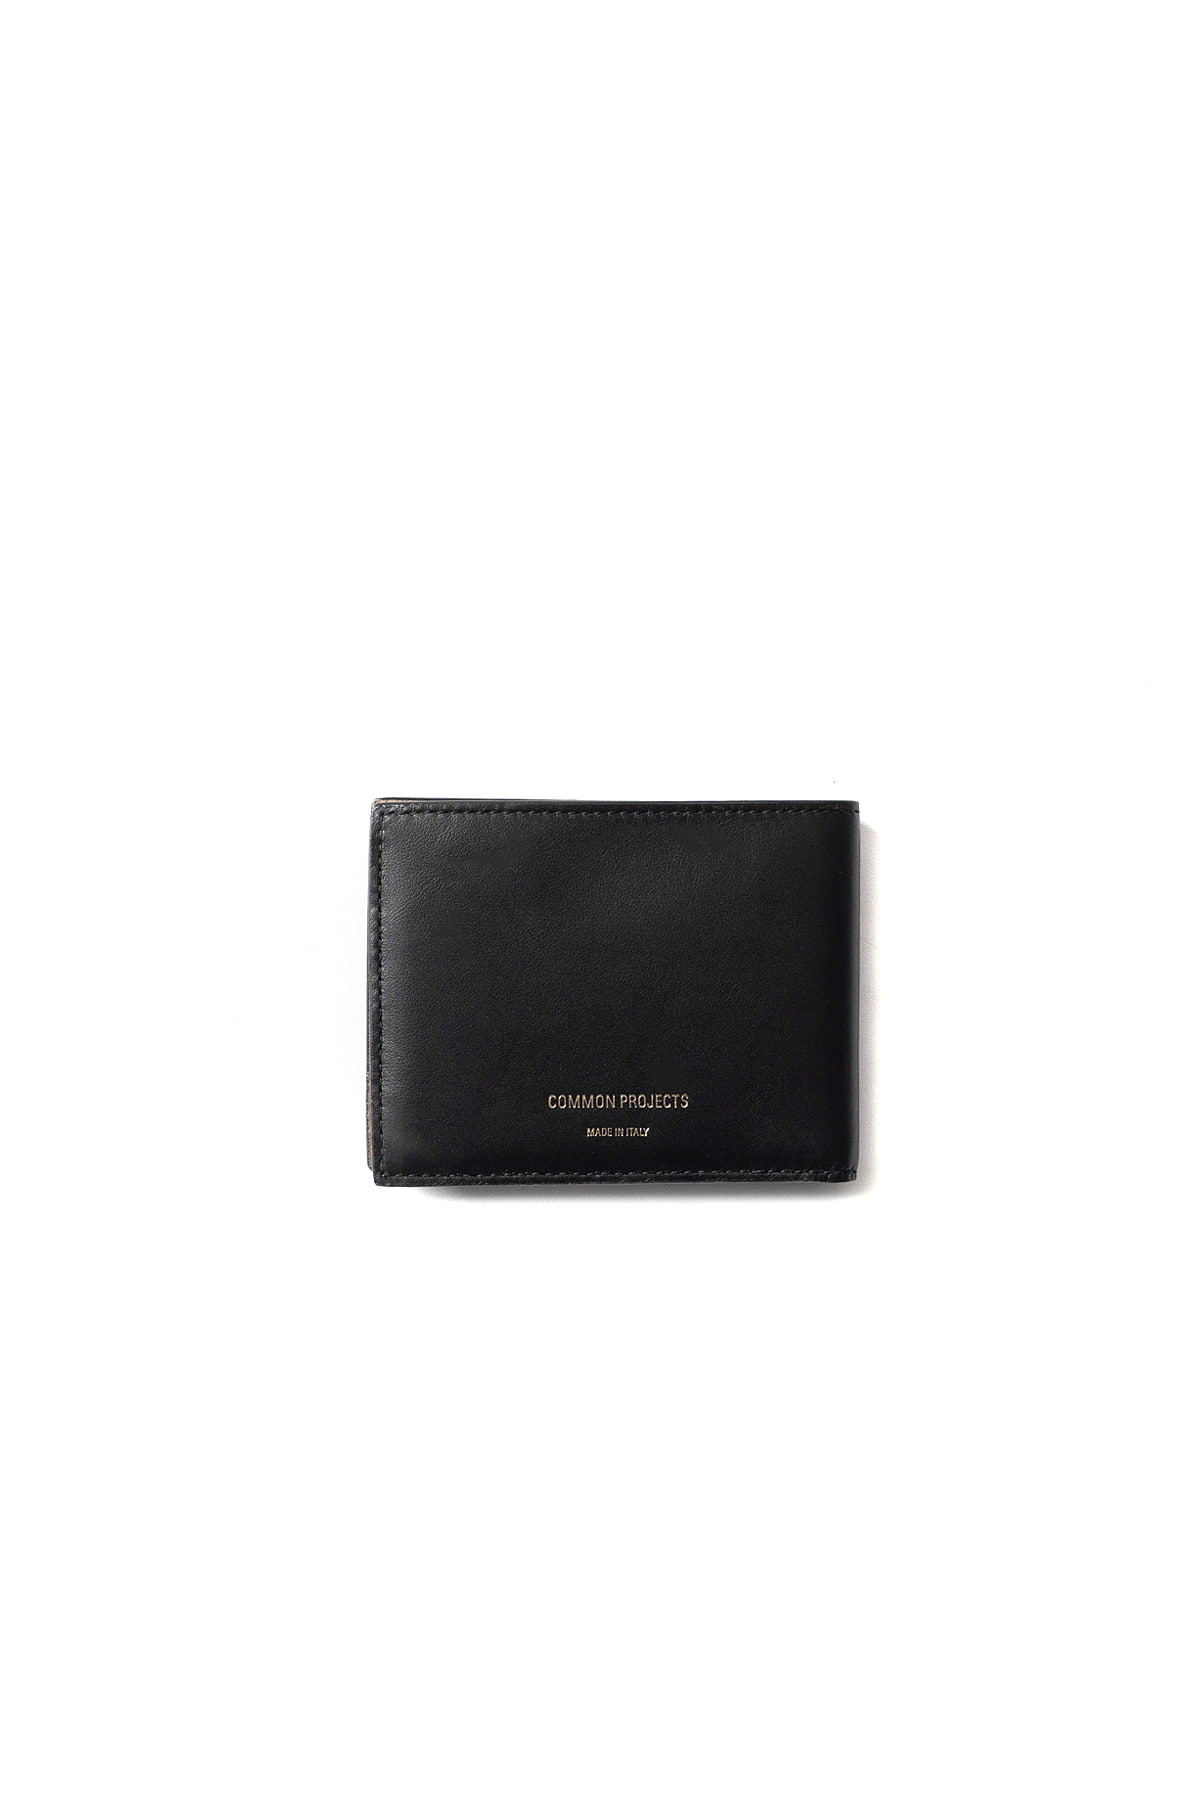 Common Projects : Standard Wallet 6CC (Black)